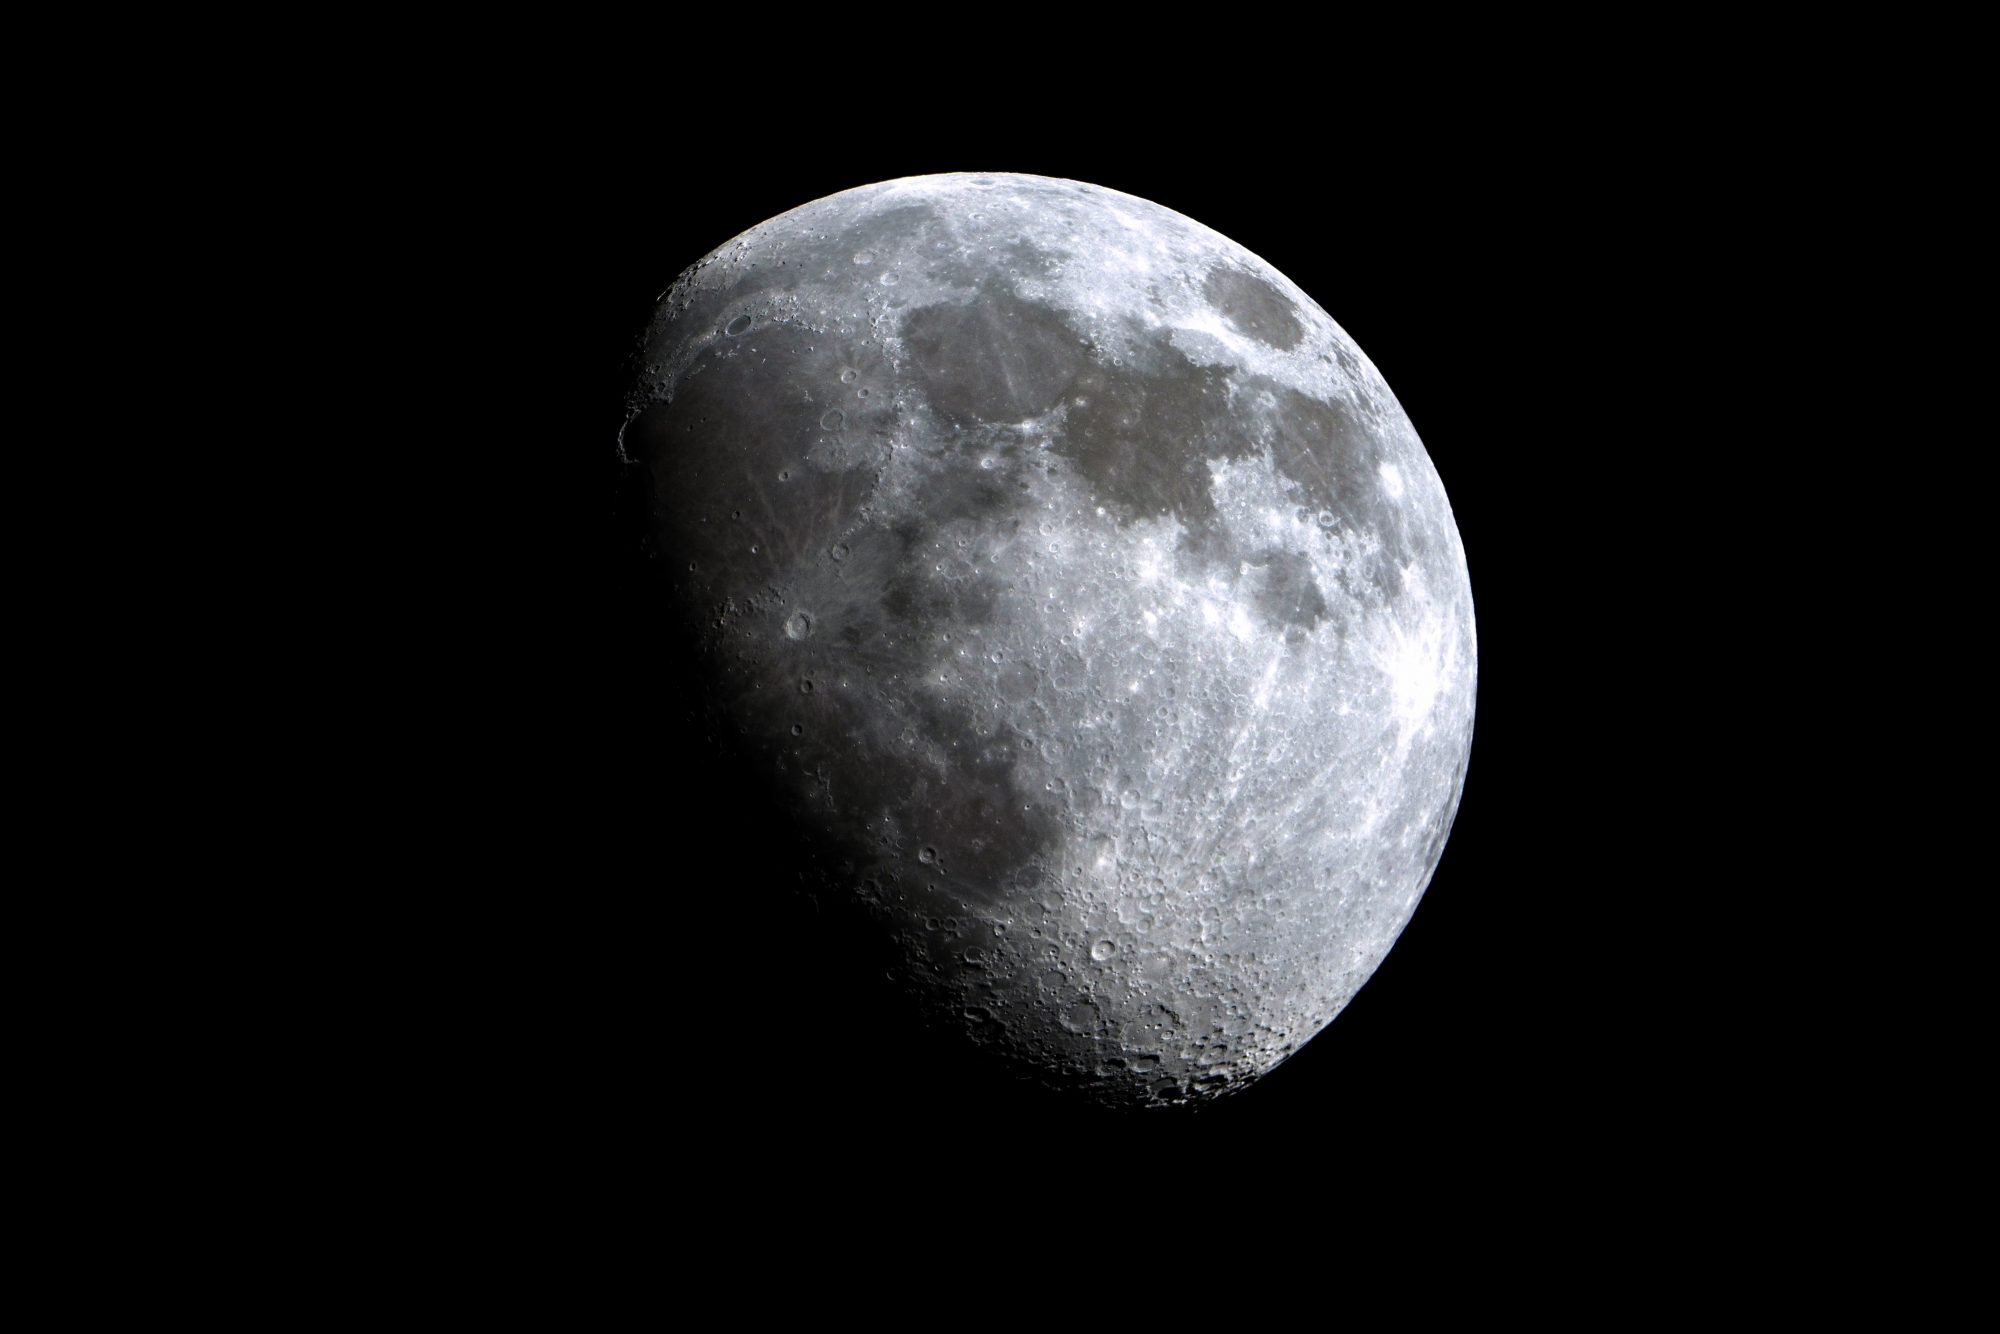 view of clear moon night sky